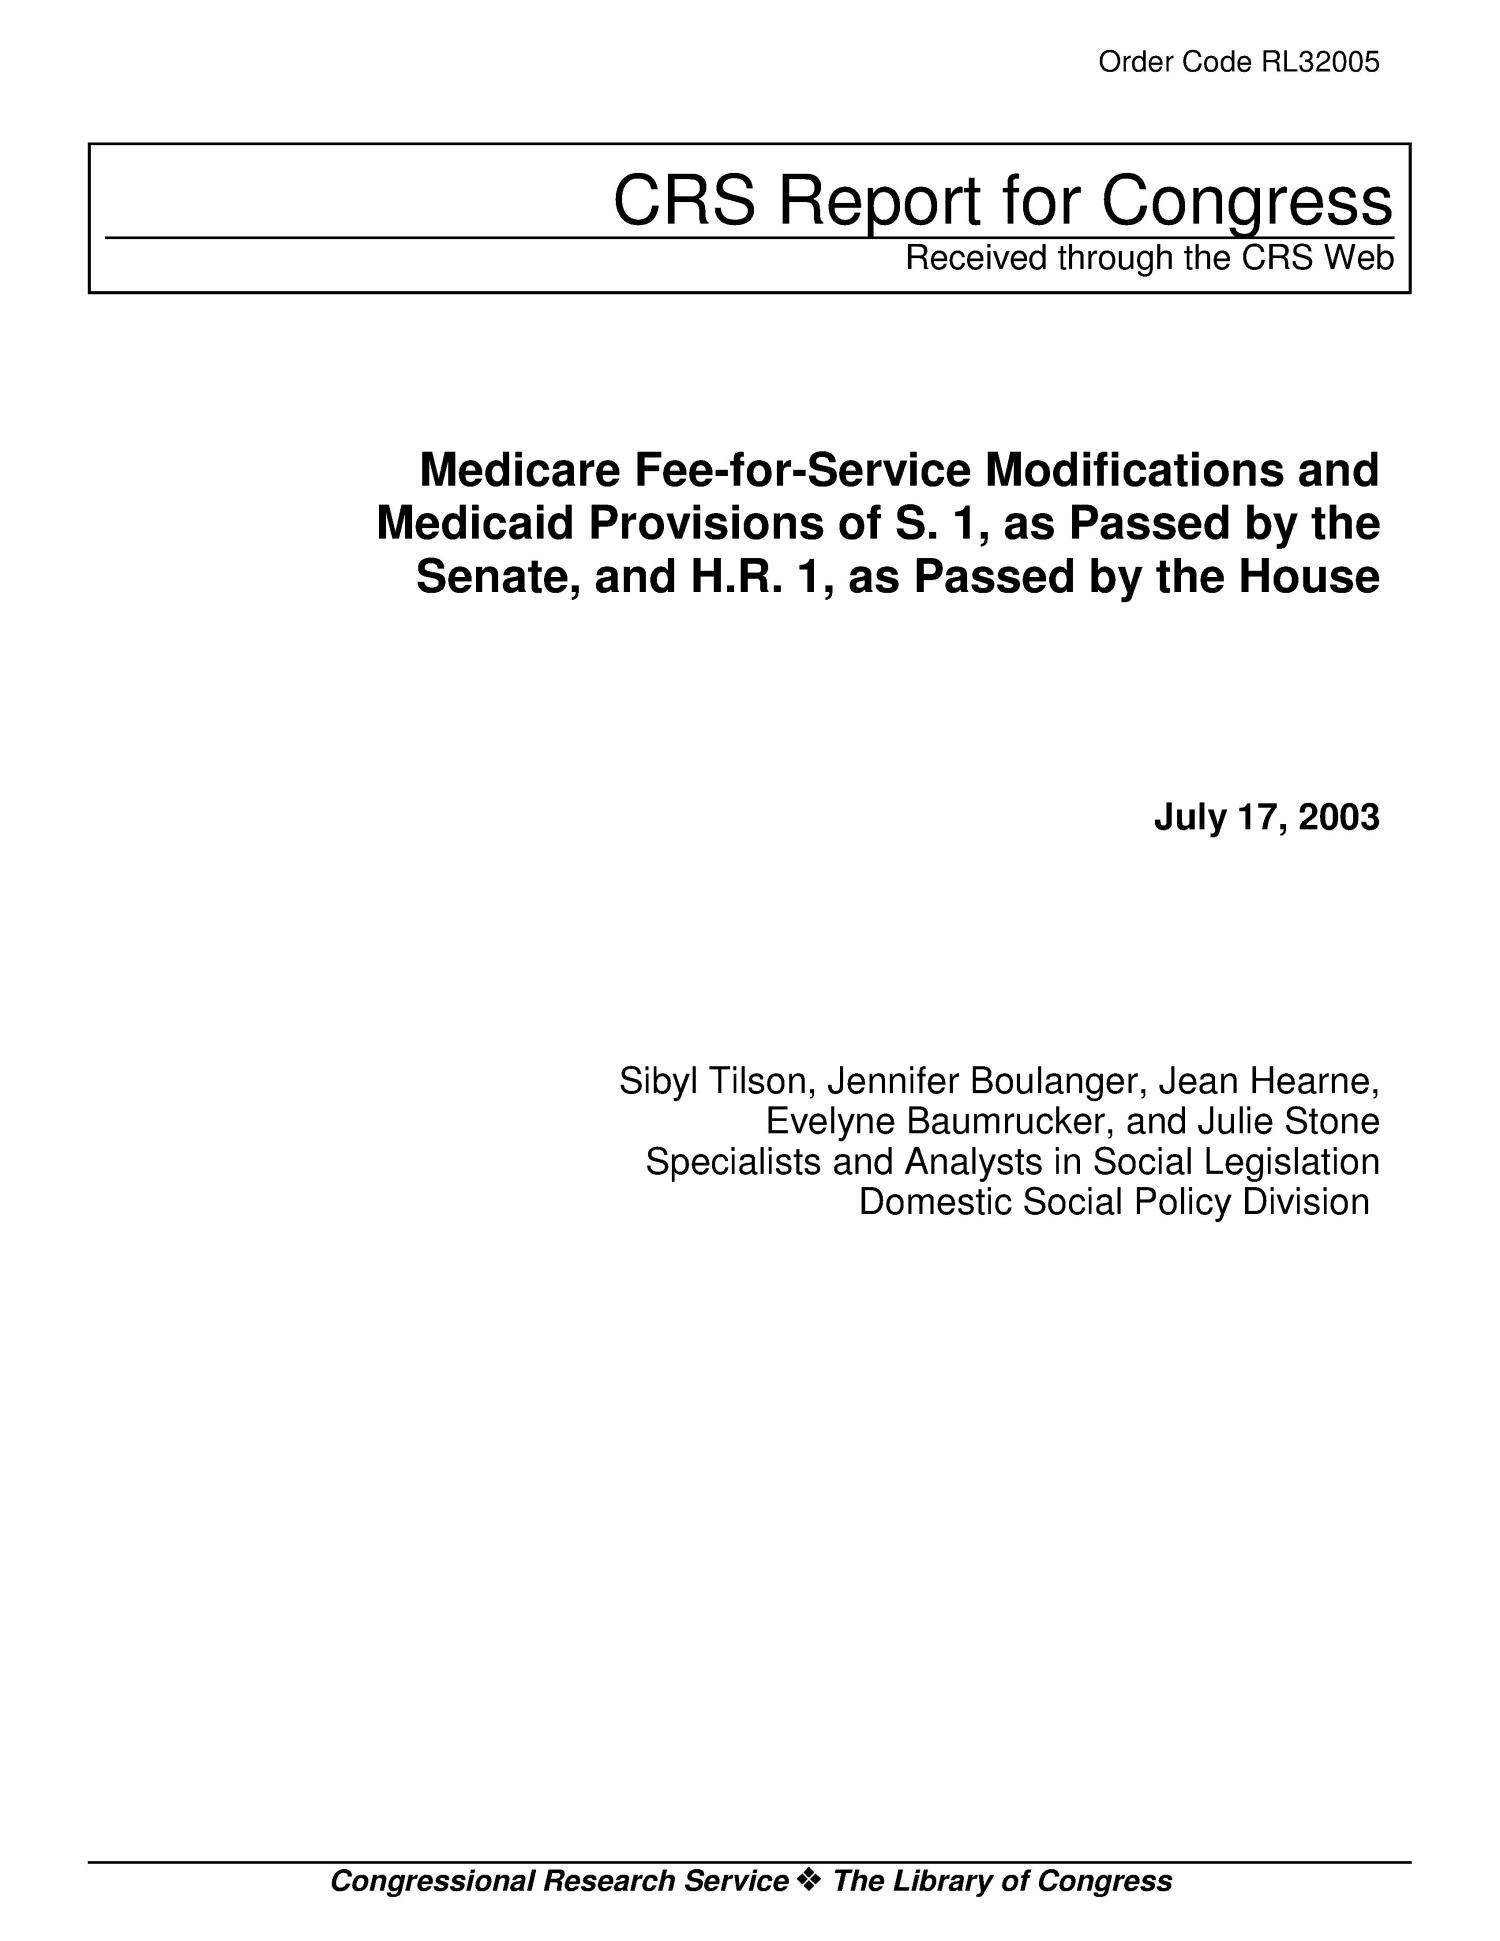 Medicare Fee-for-Service Modifications and Medicaid Provisions of S. 1, as Passed by the Senate, and H.R. 1, as Passed by the House                                                                                                      [Sequence #]: 1 of 76